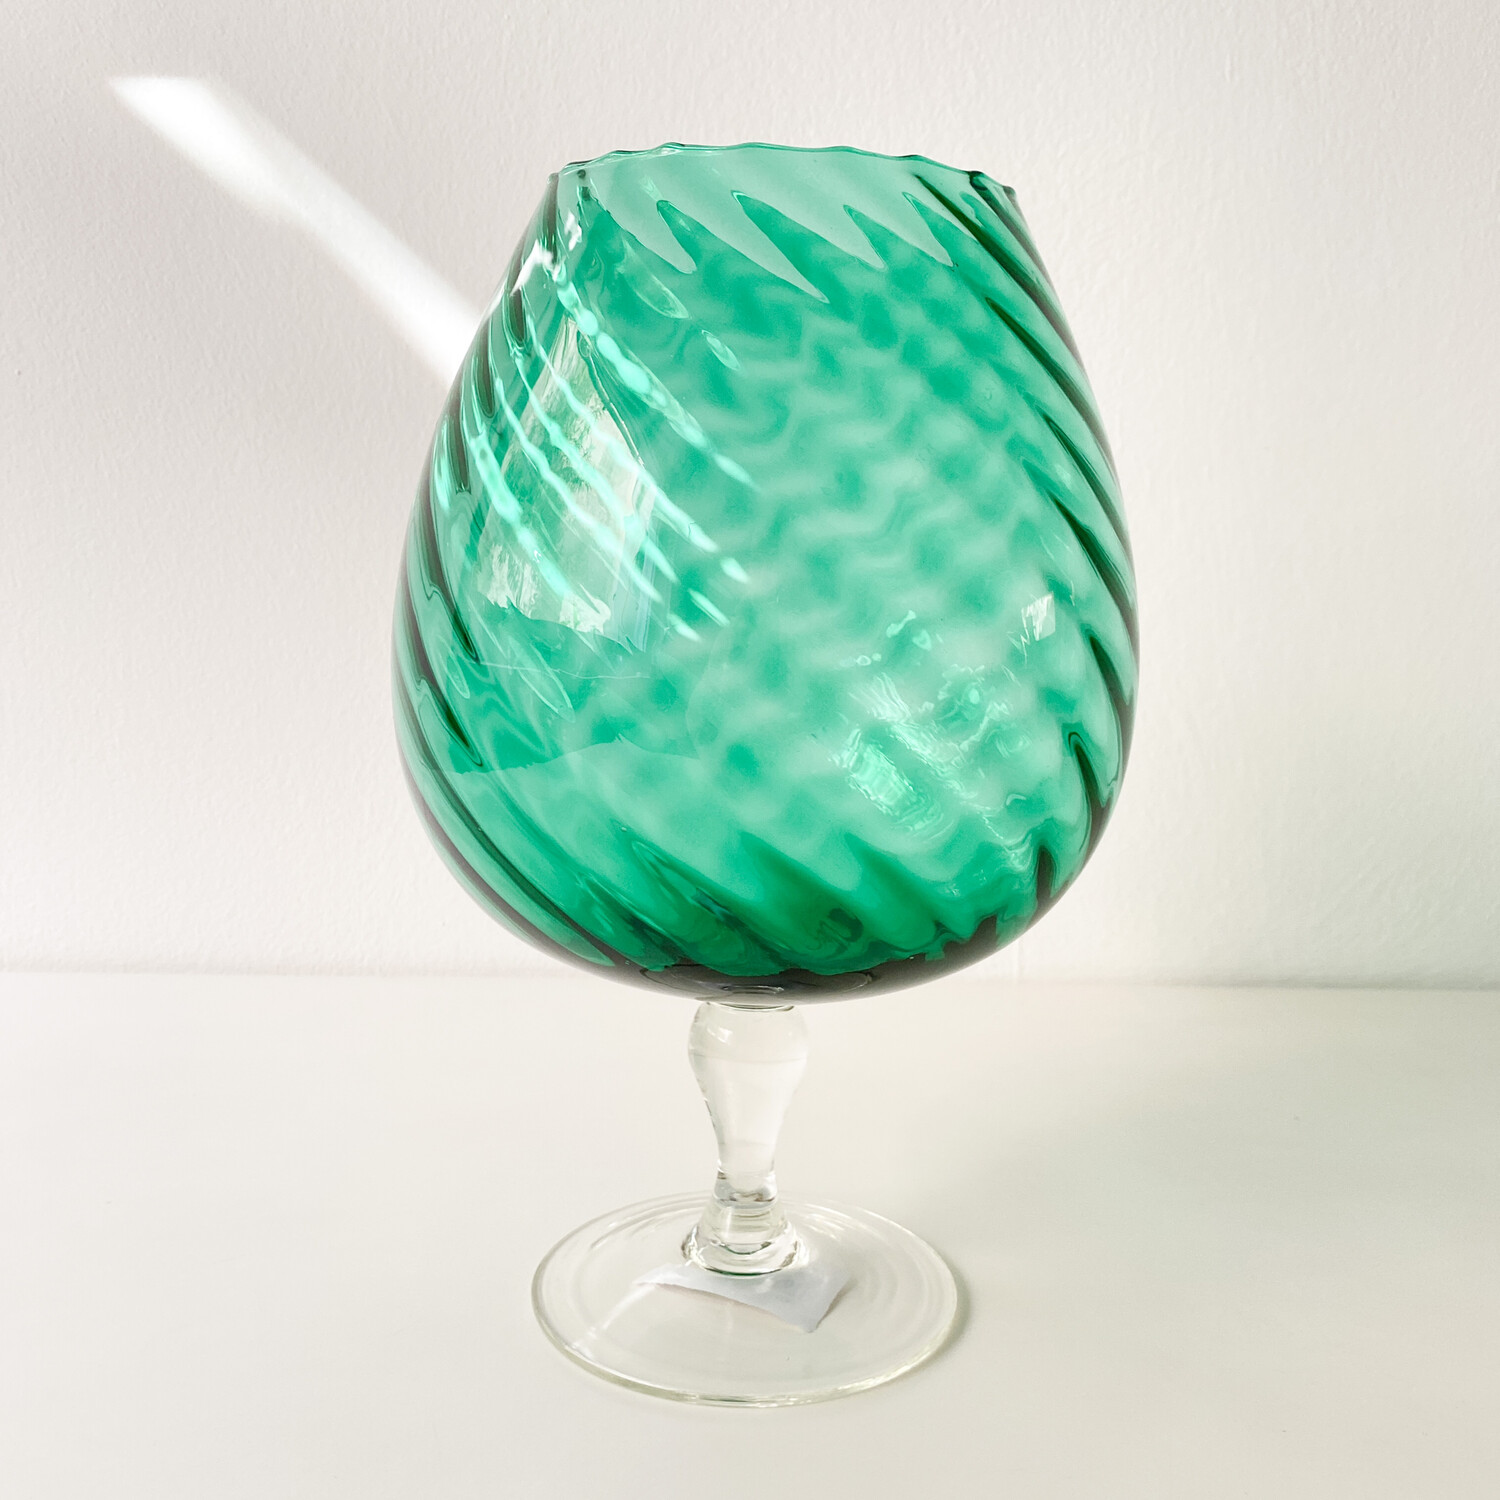 Emerald goblet from the 1960s